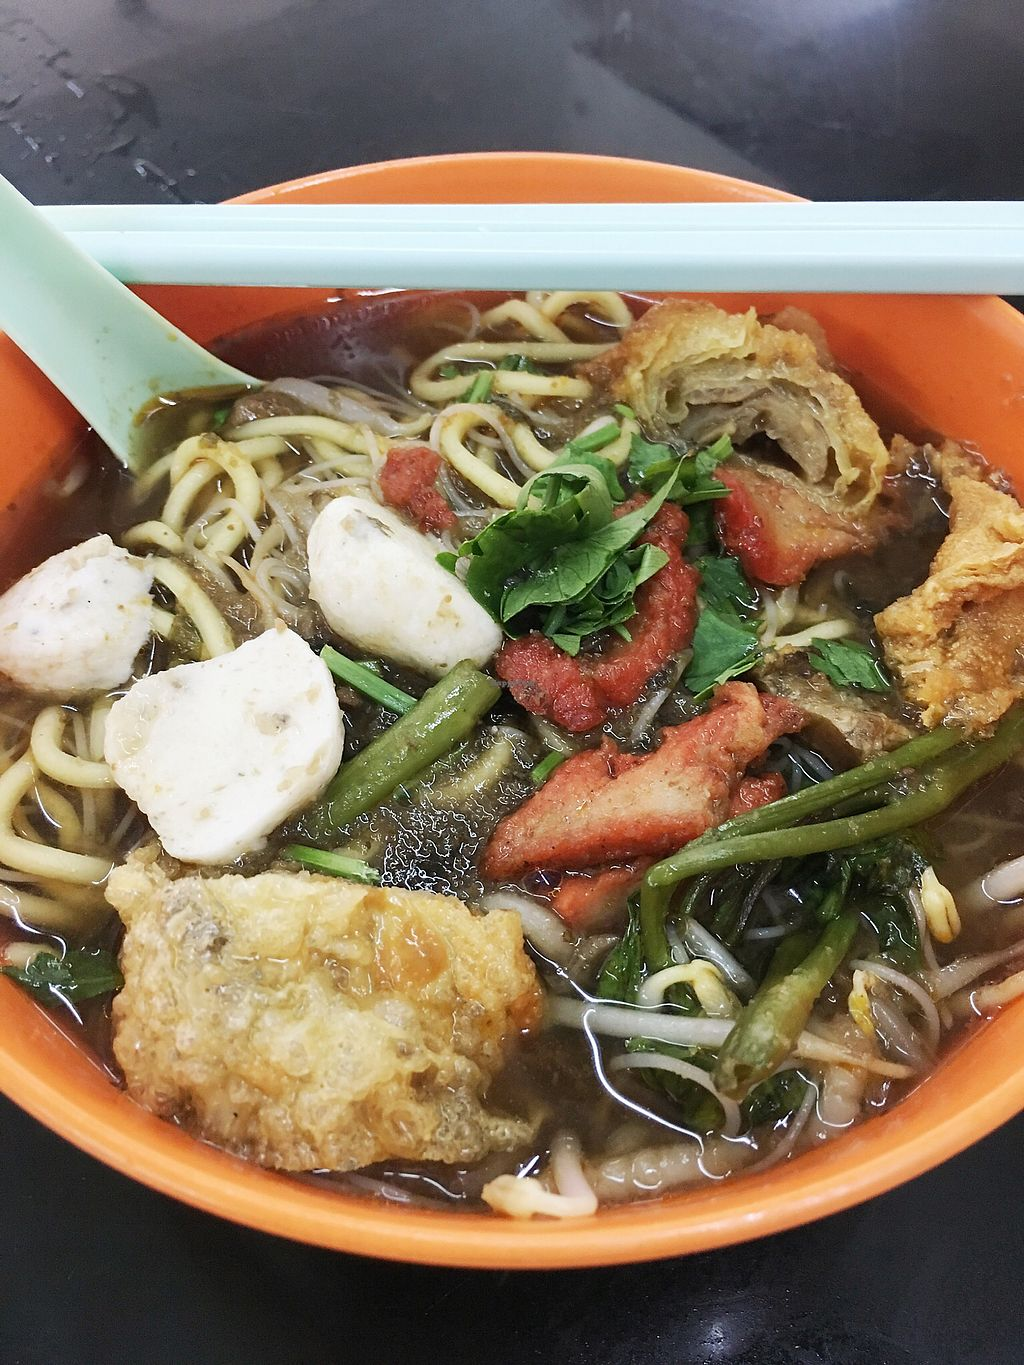 """Photo of Blue Boy Vegetarian Food Centre Stall  by <a href=""""/members/profile/pauldub"""">pauldub</a> <br/>Prawn mee is very tasty even if it doesn't taste like the conventional version <br/> March 22, 2018  - <a href='/contact/abuse/image/6111/374284'>Report</a>"""